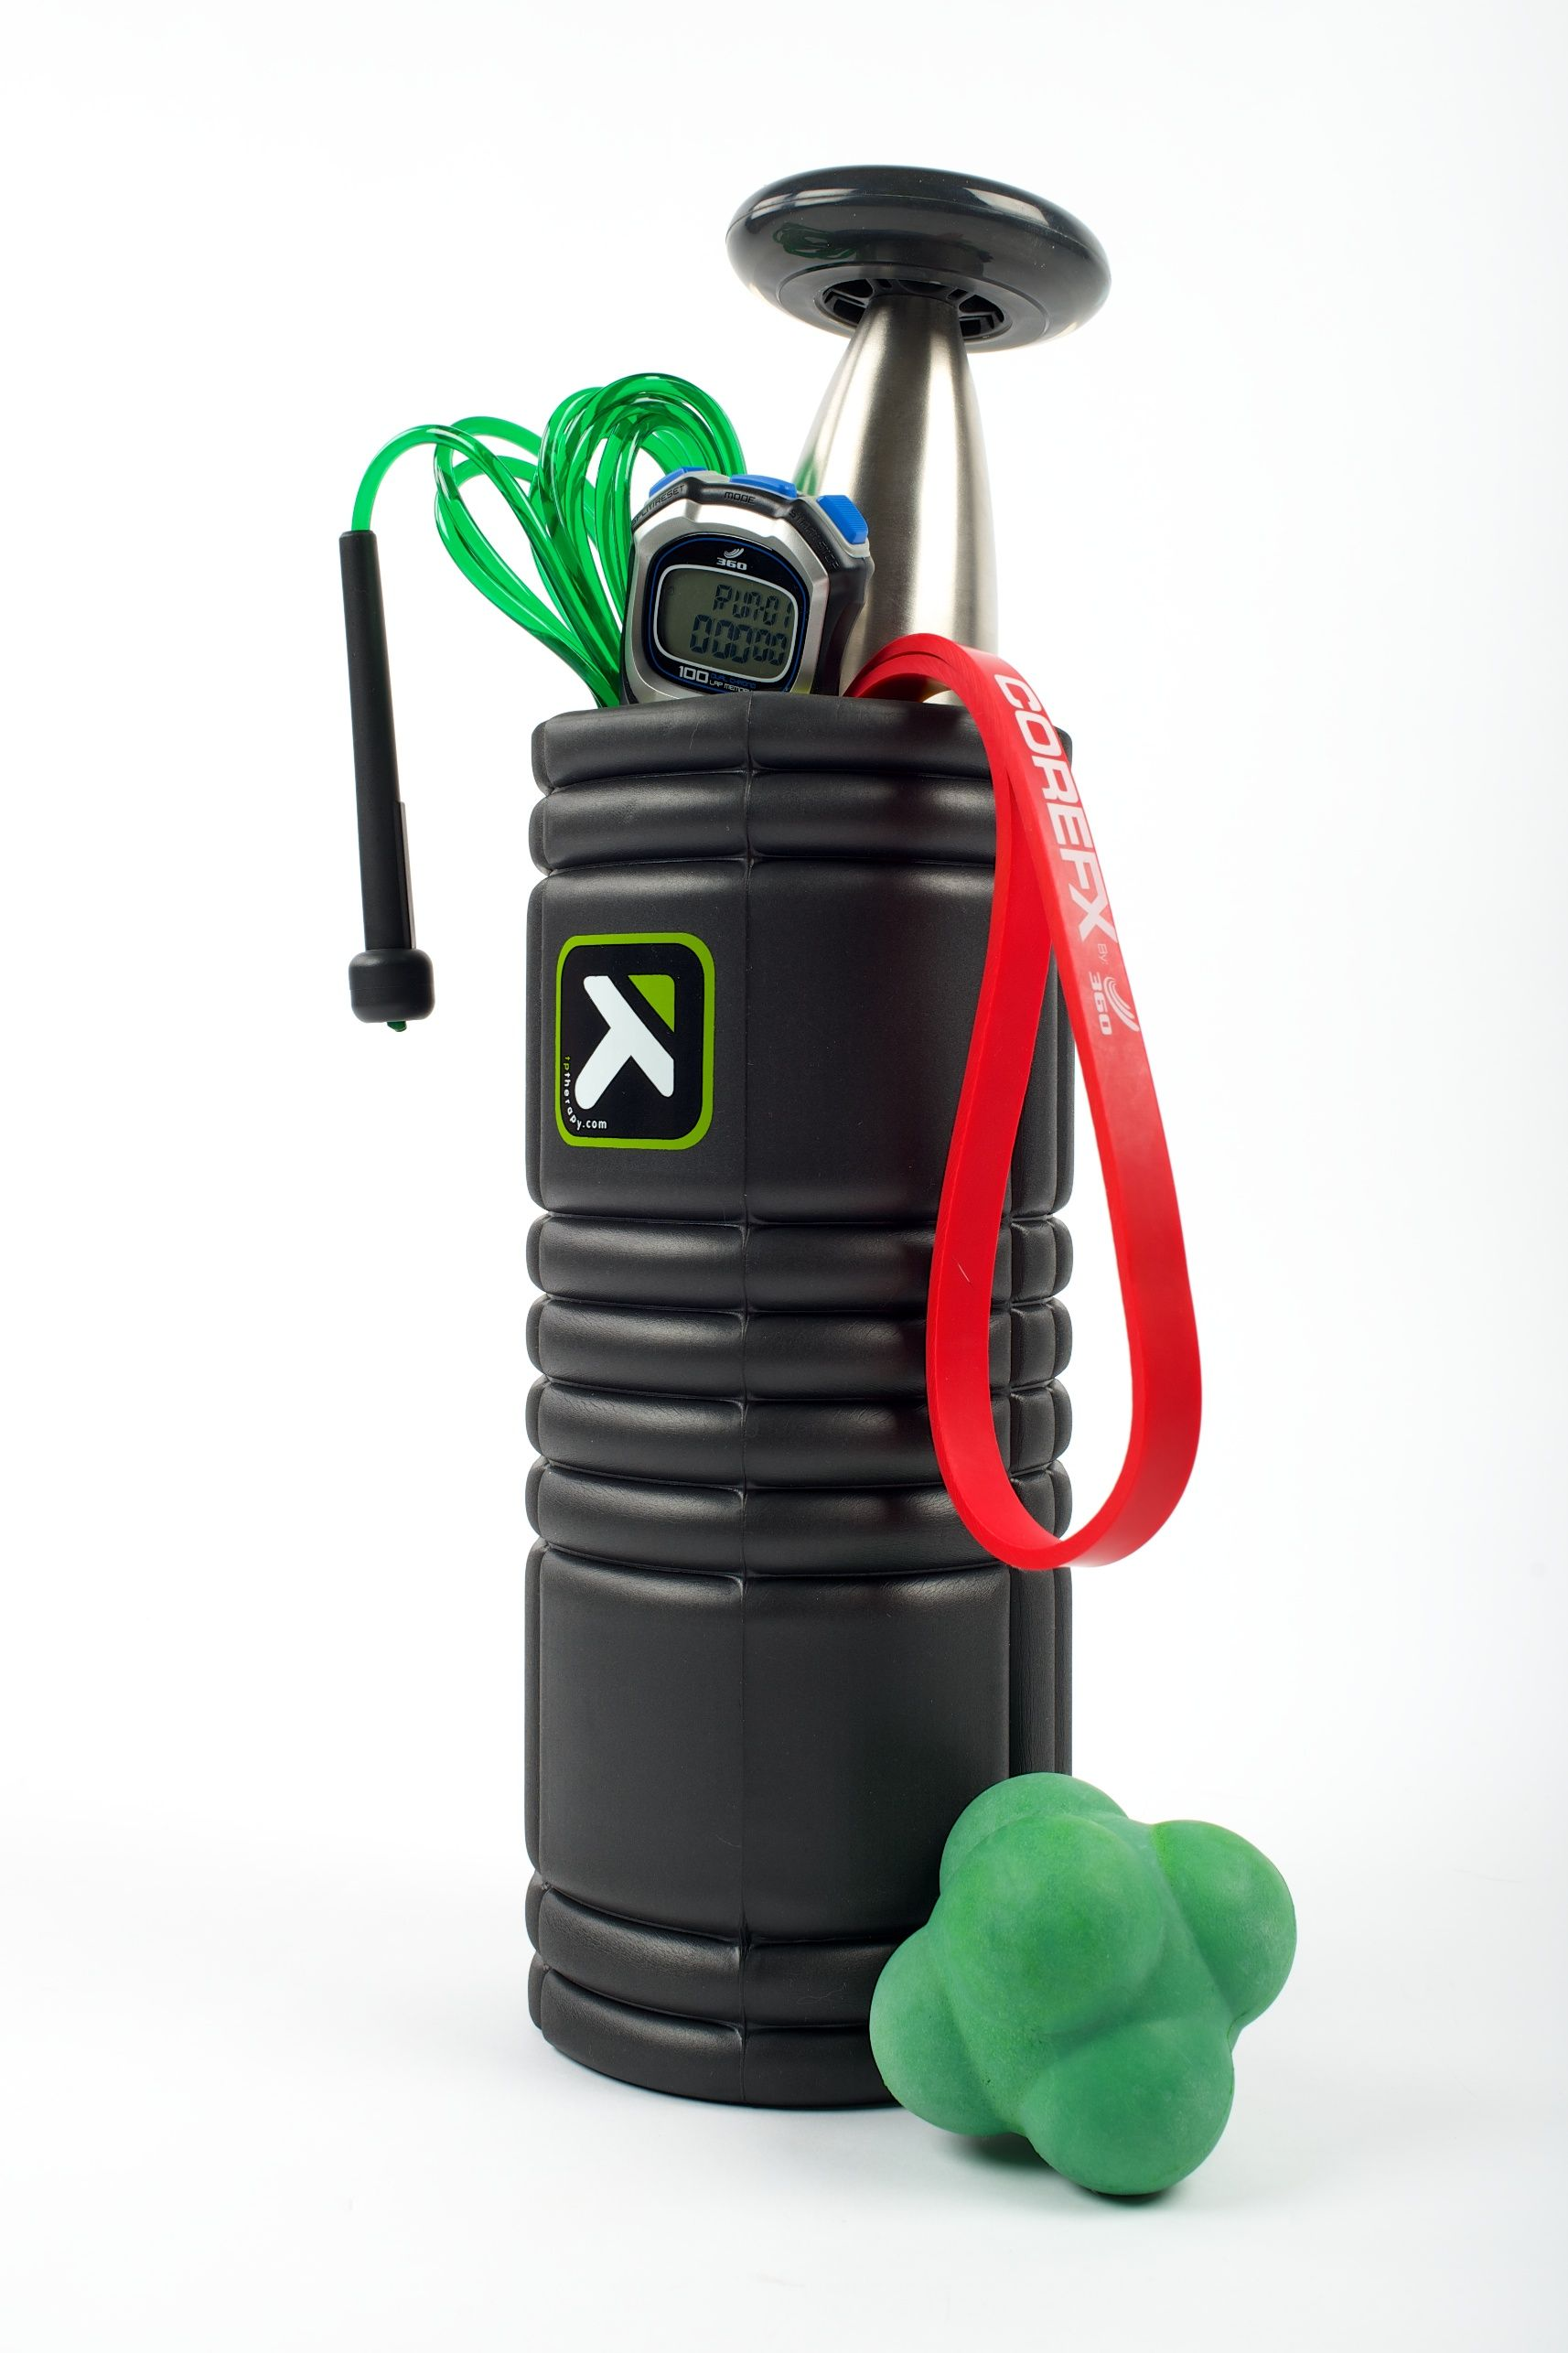 Fitness Stocking Stuffer Idea From 360 Triggerpoint